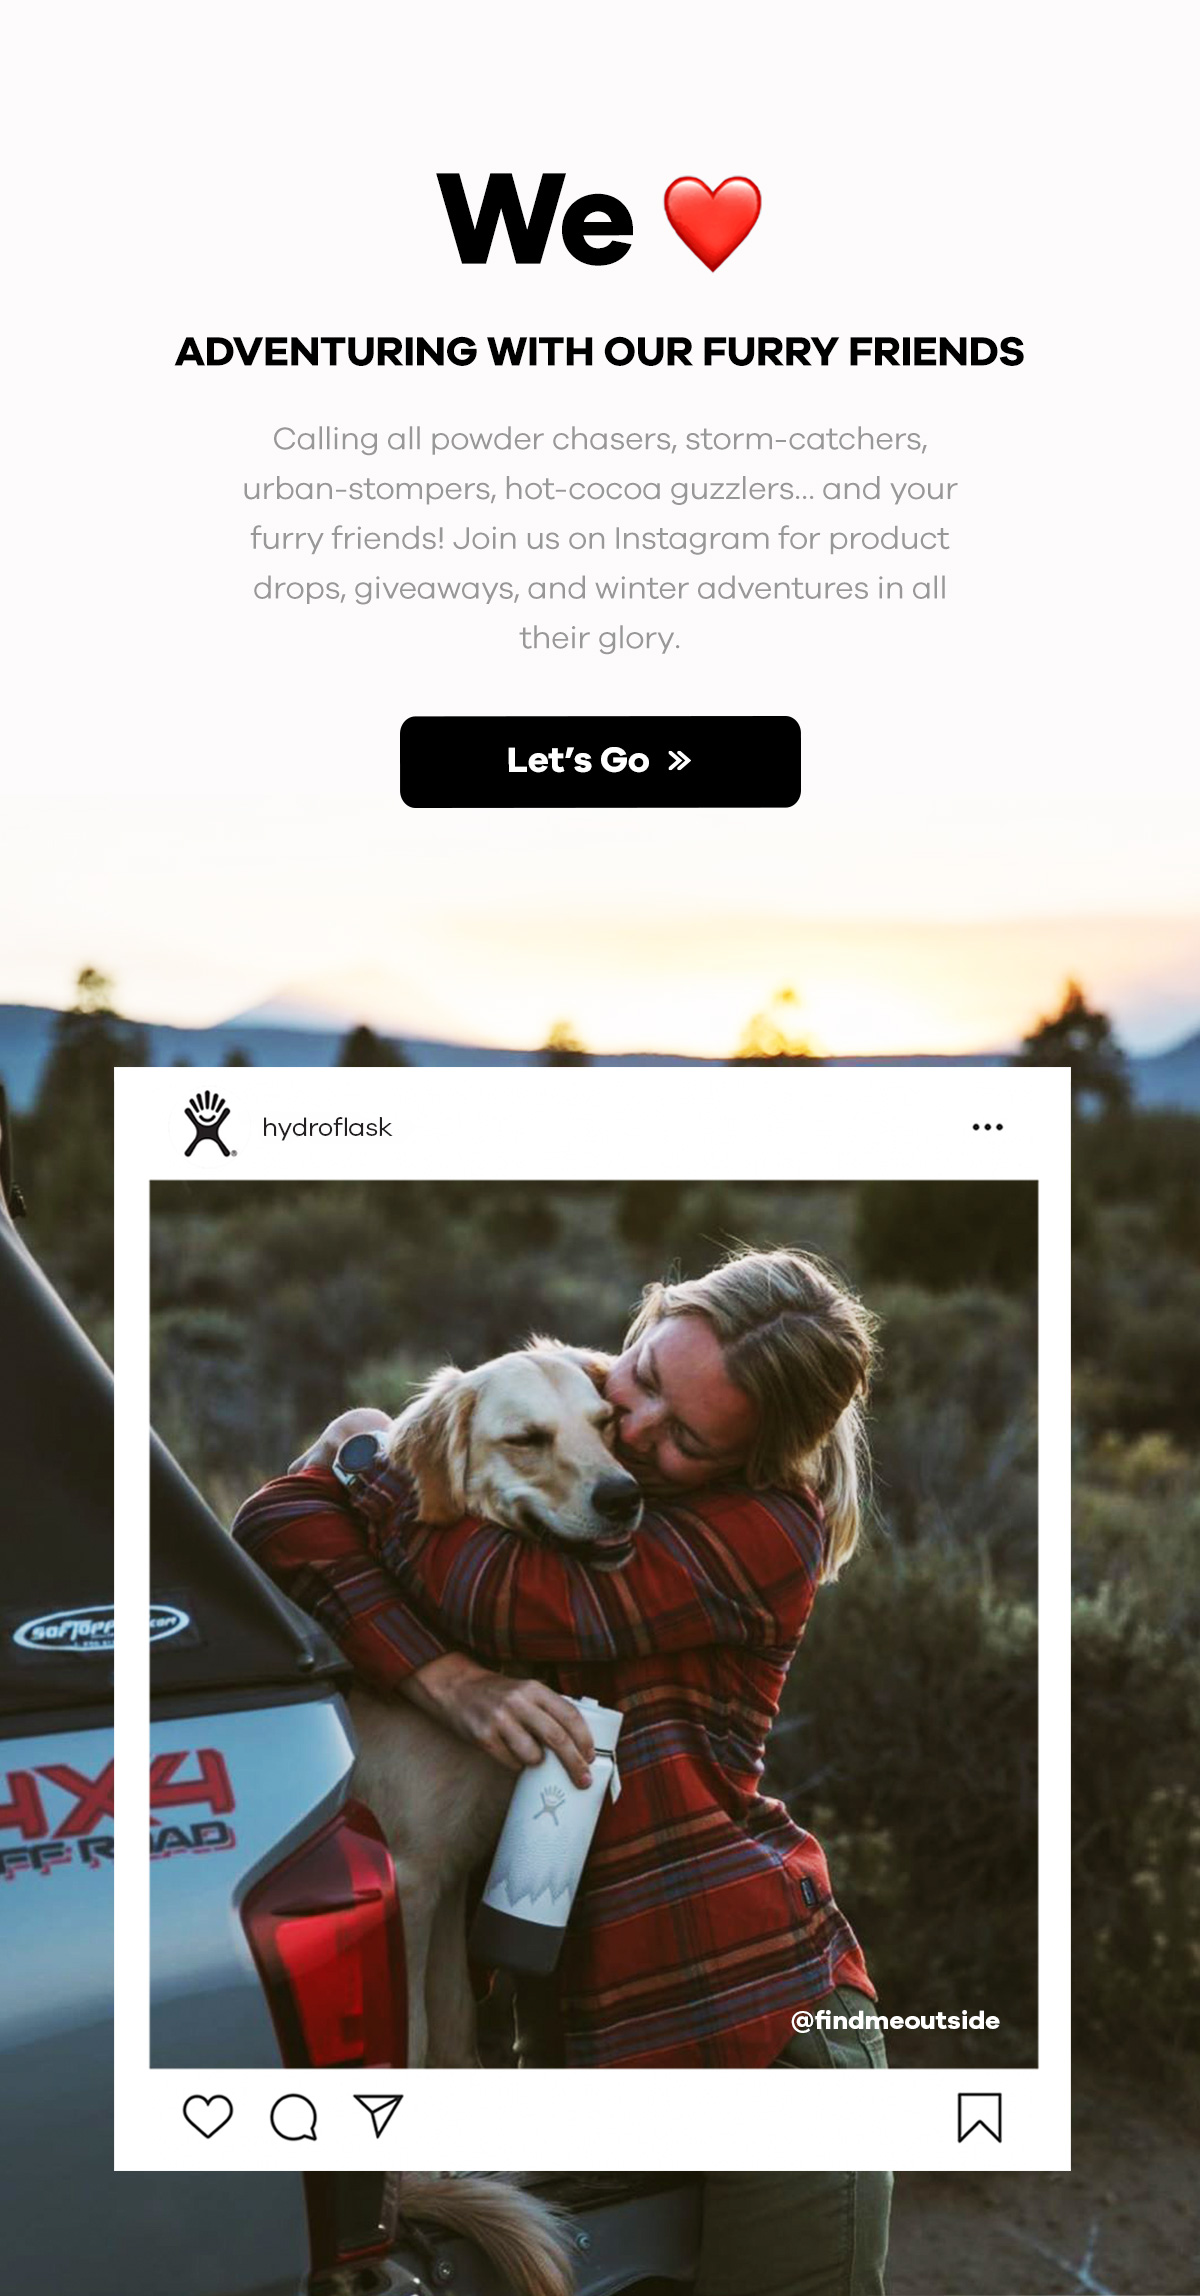 We love adventuring with our furry friends | Calling all powder chasers, storm-catchers, urban-stompers, hot-cocoa gusslers... and your furry friends! Join us on Instagram for product drops, giveaways, and winter adventures in all their glory. | Let's Go >>